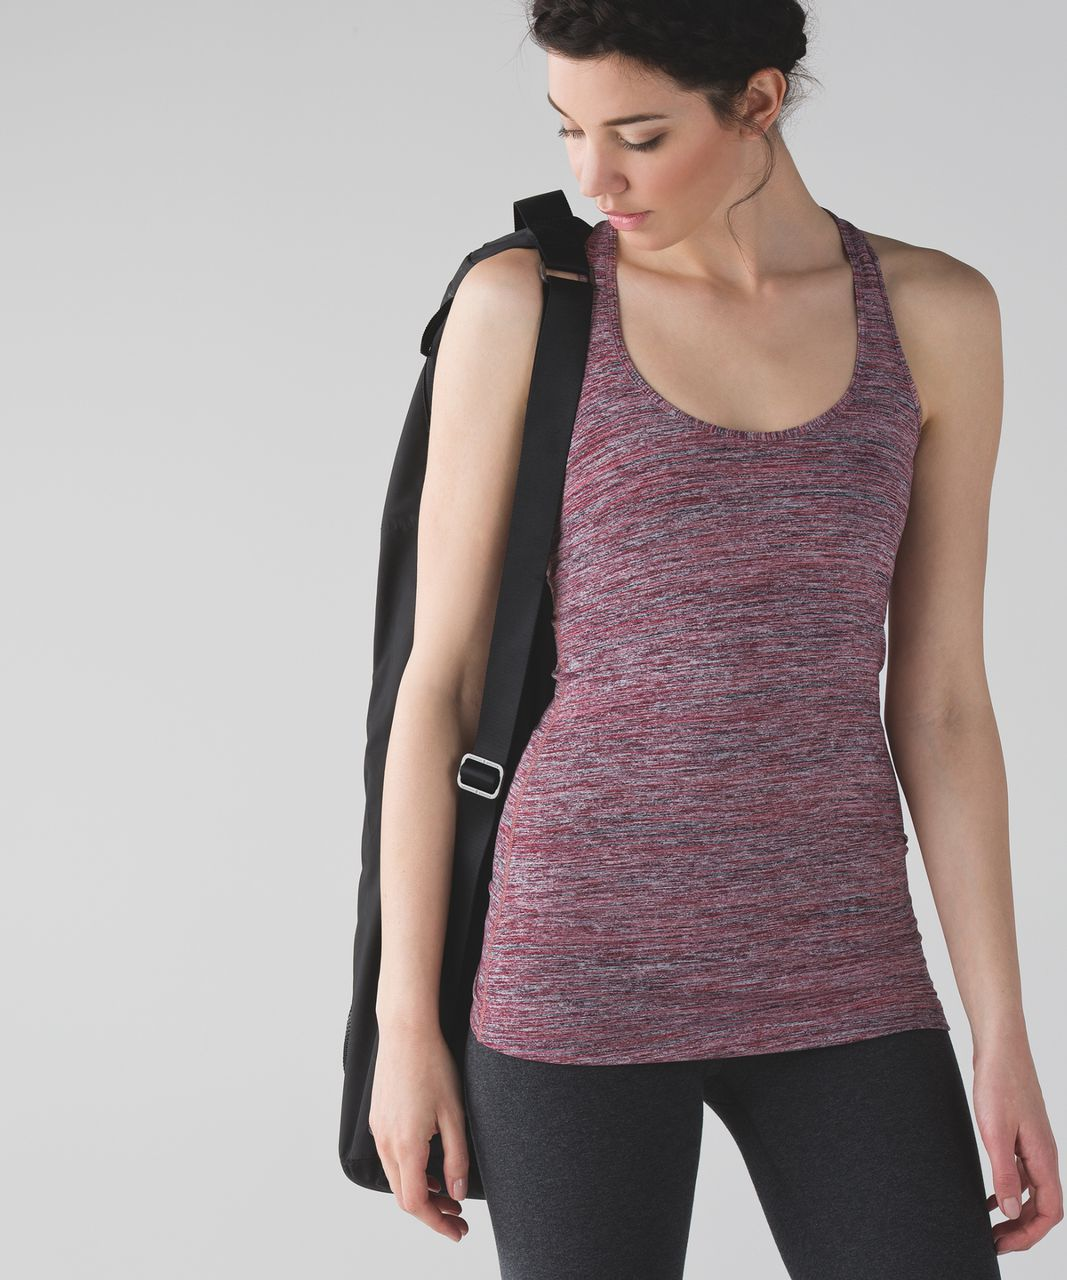 Lululemon Cool Racerback - Space Dye Camo Rosewood Fireside Red